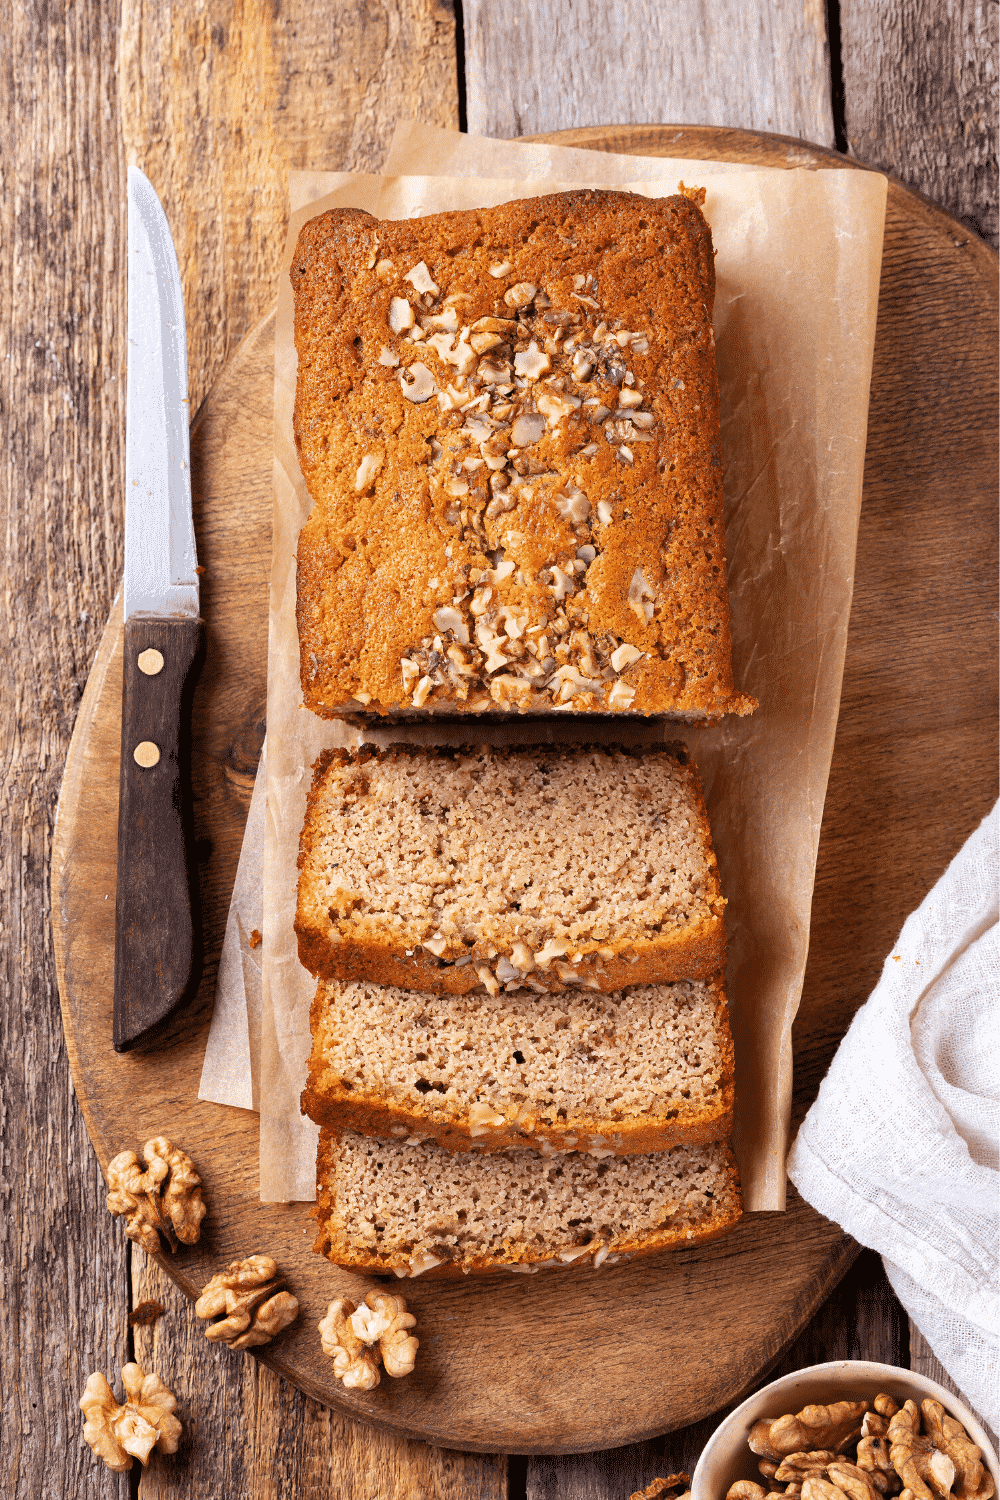 A loaf of banana bread and a piece of white parchment paper on a wooden cutting board. Three pieces of the banana bread are sliced and are in front of the loaf overlapping one another. A knife is to the left of the banana bread and there are a few walnuts in front of it